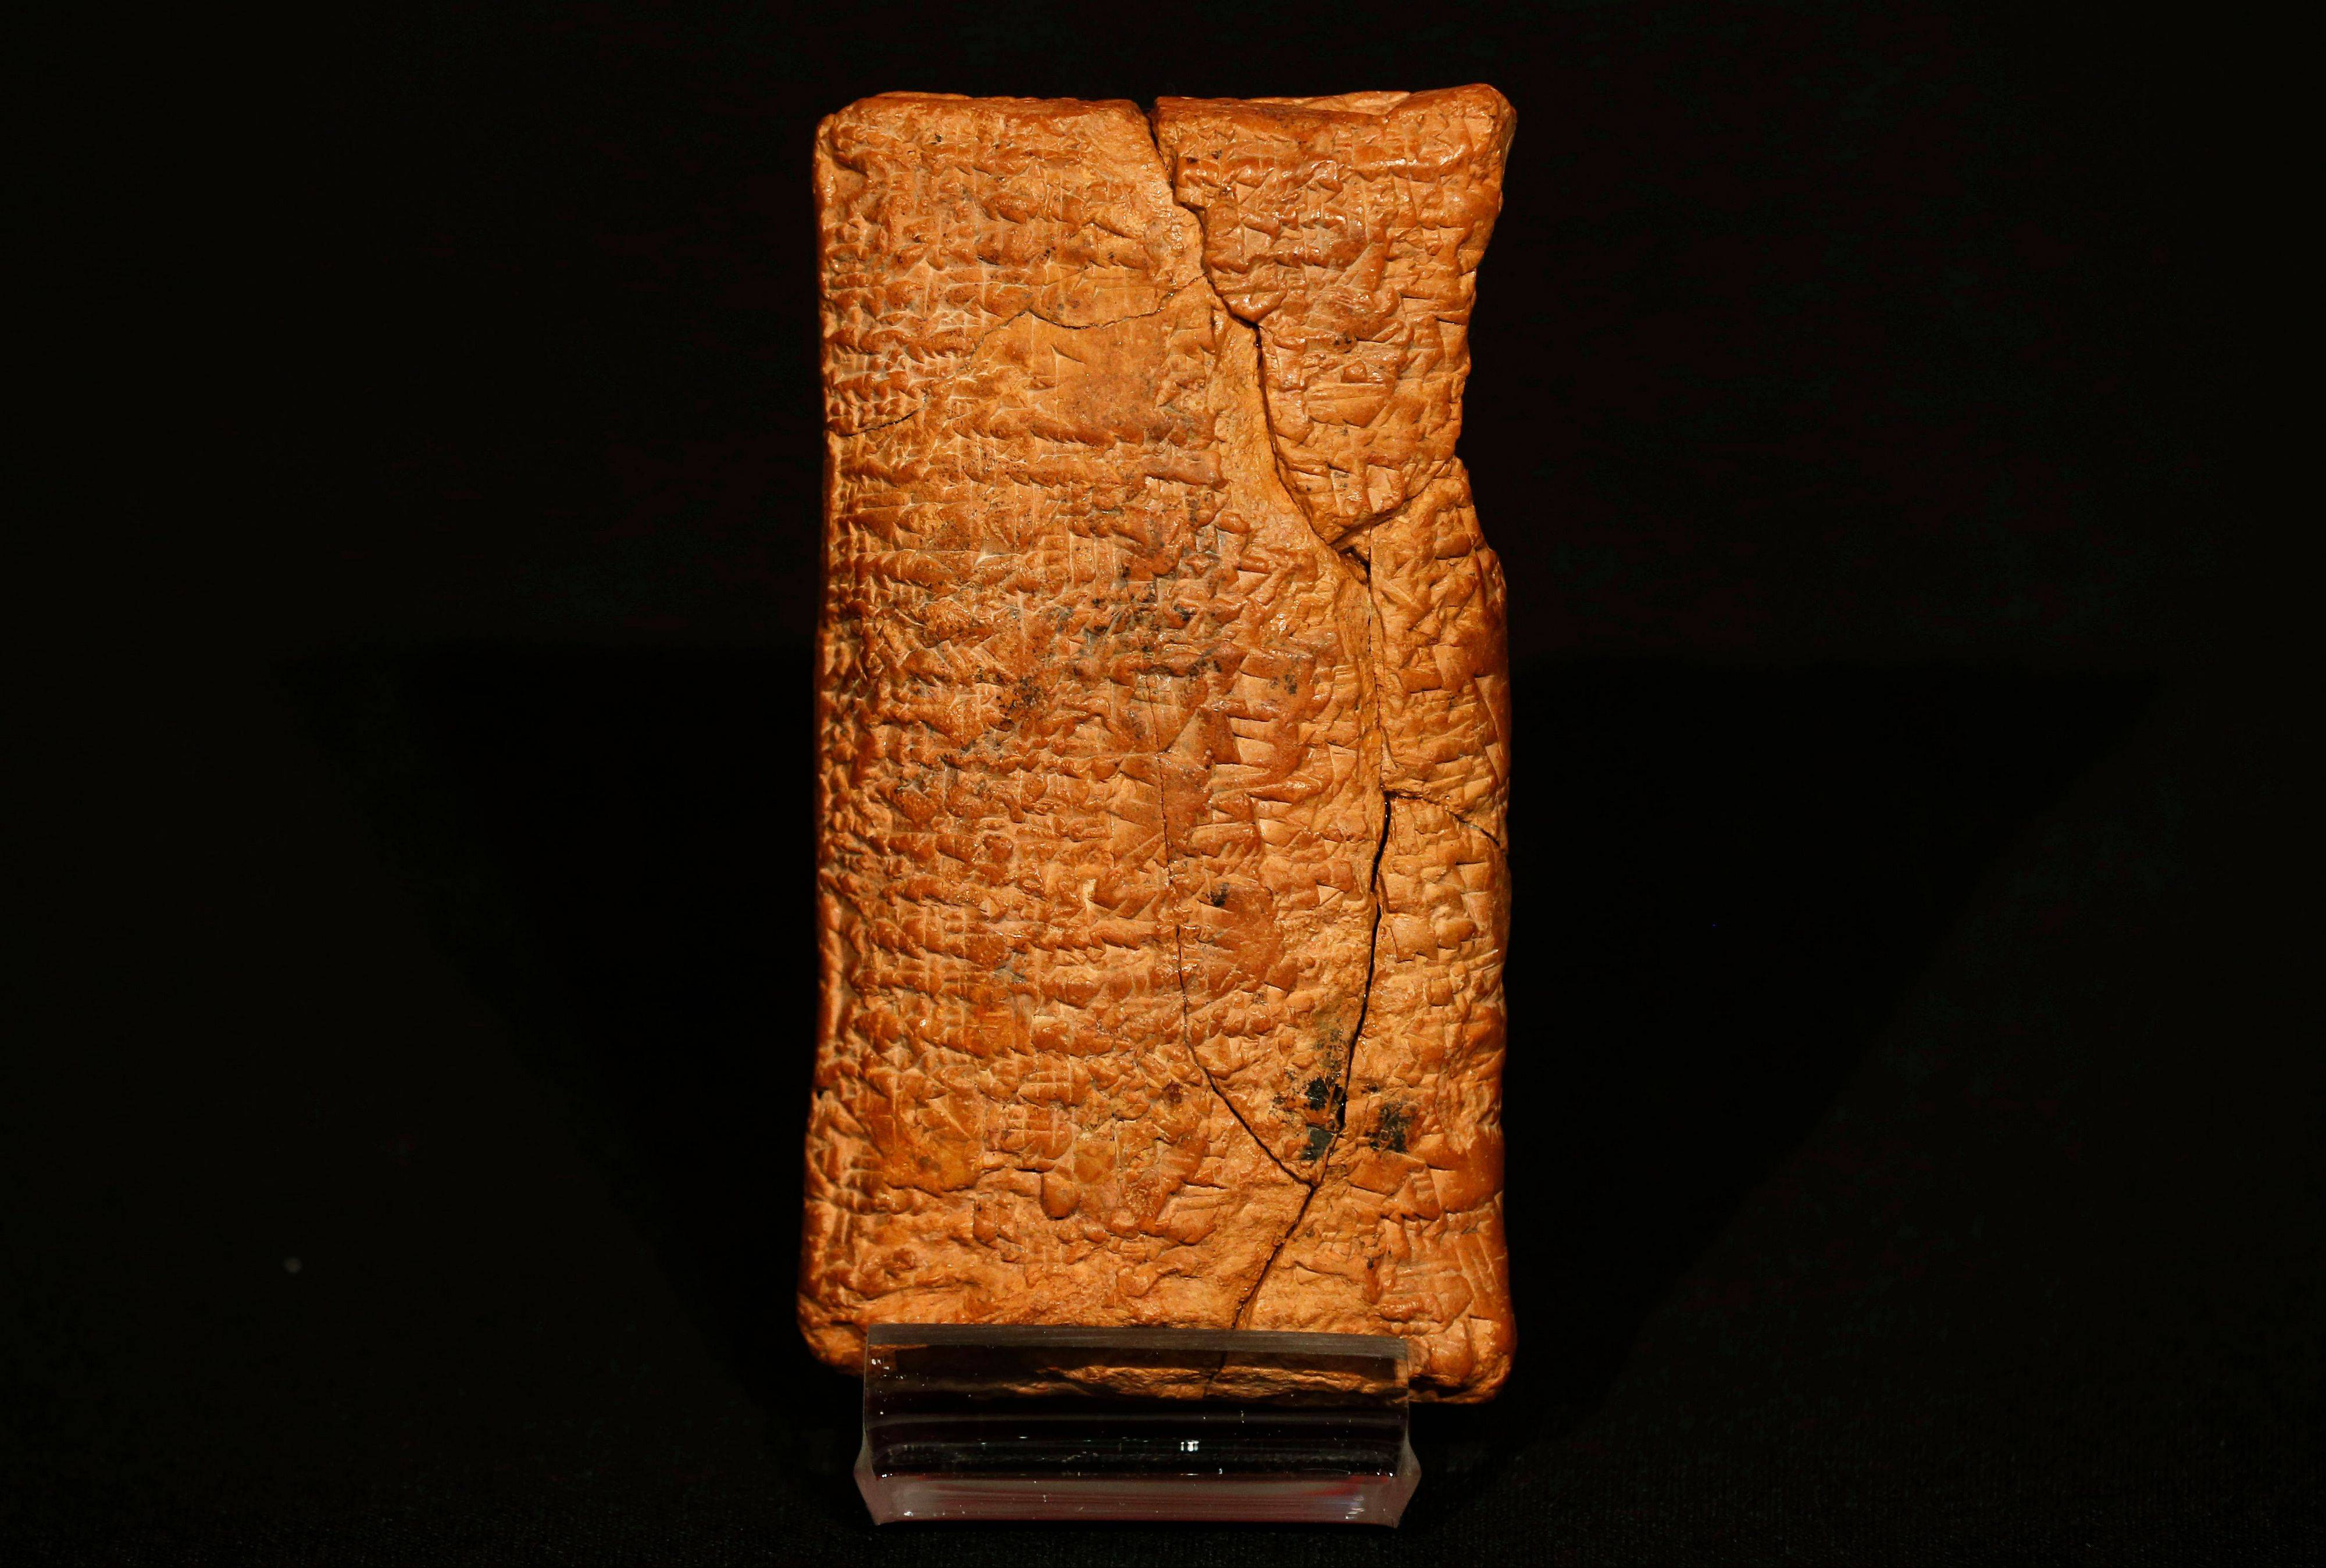 The 4000 year old clay tablet containing the story of the Ark and the flood.